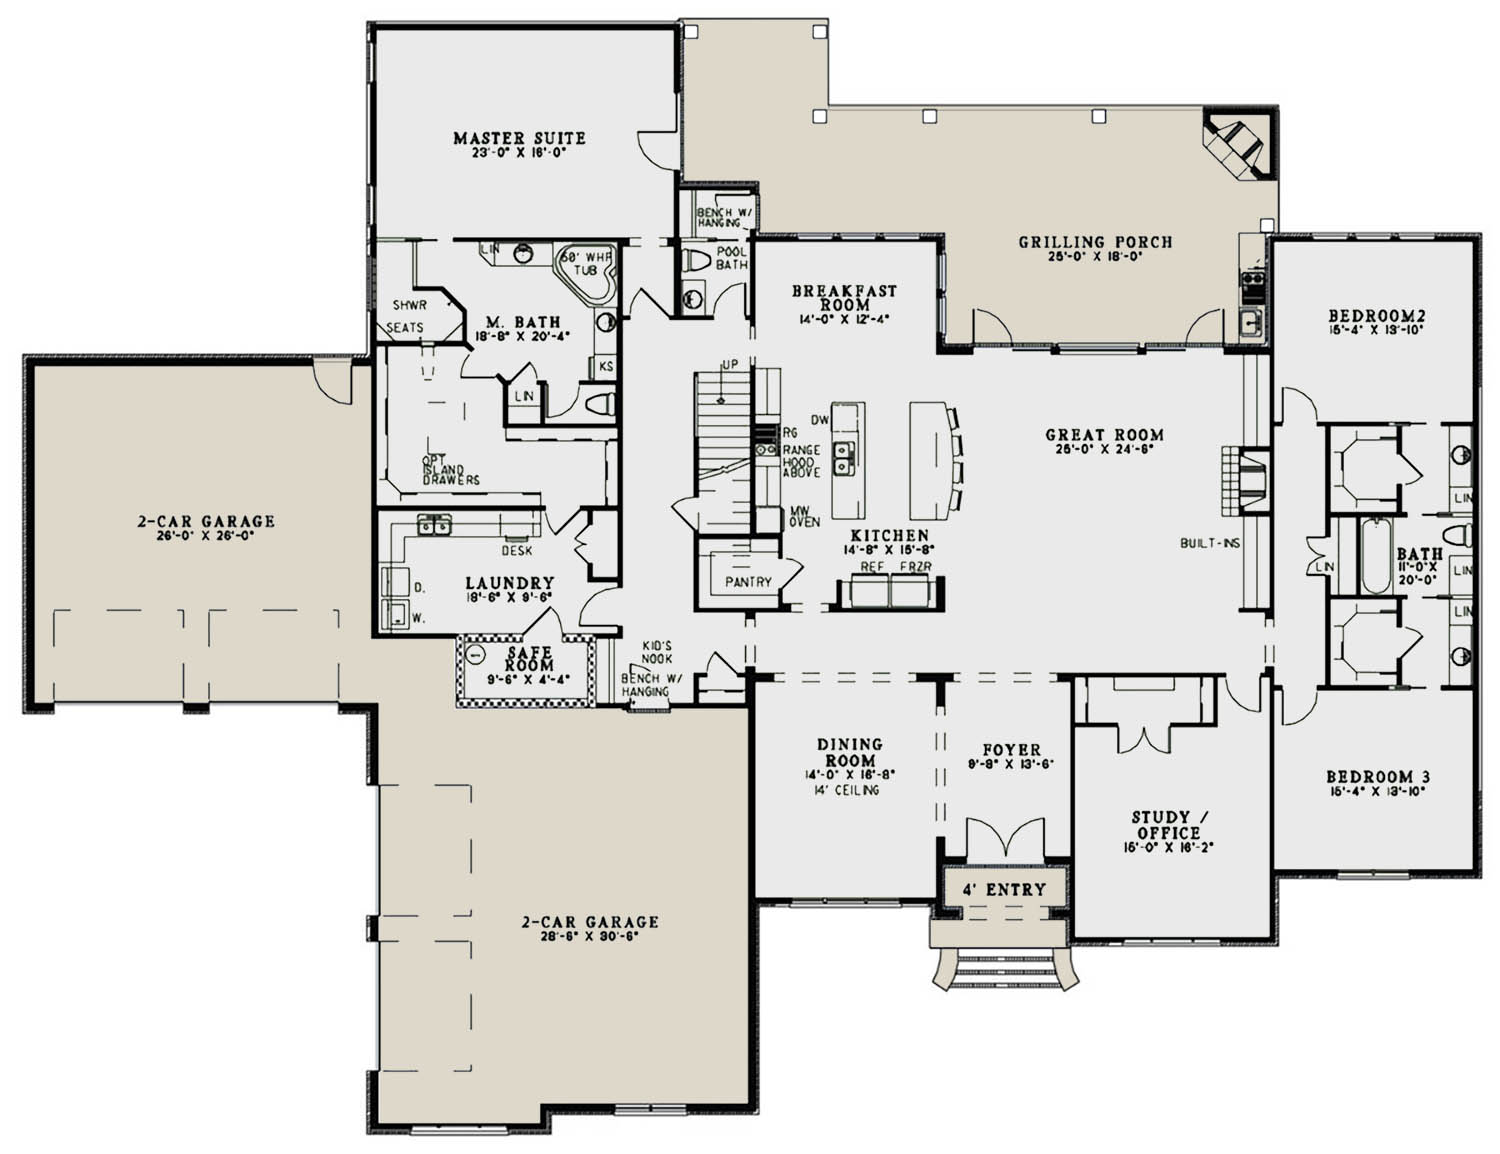 European plan 4 076 square feet 3 bedrooms 3 5 bathrooms 110 00989 Master bedroom and bath square footage